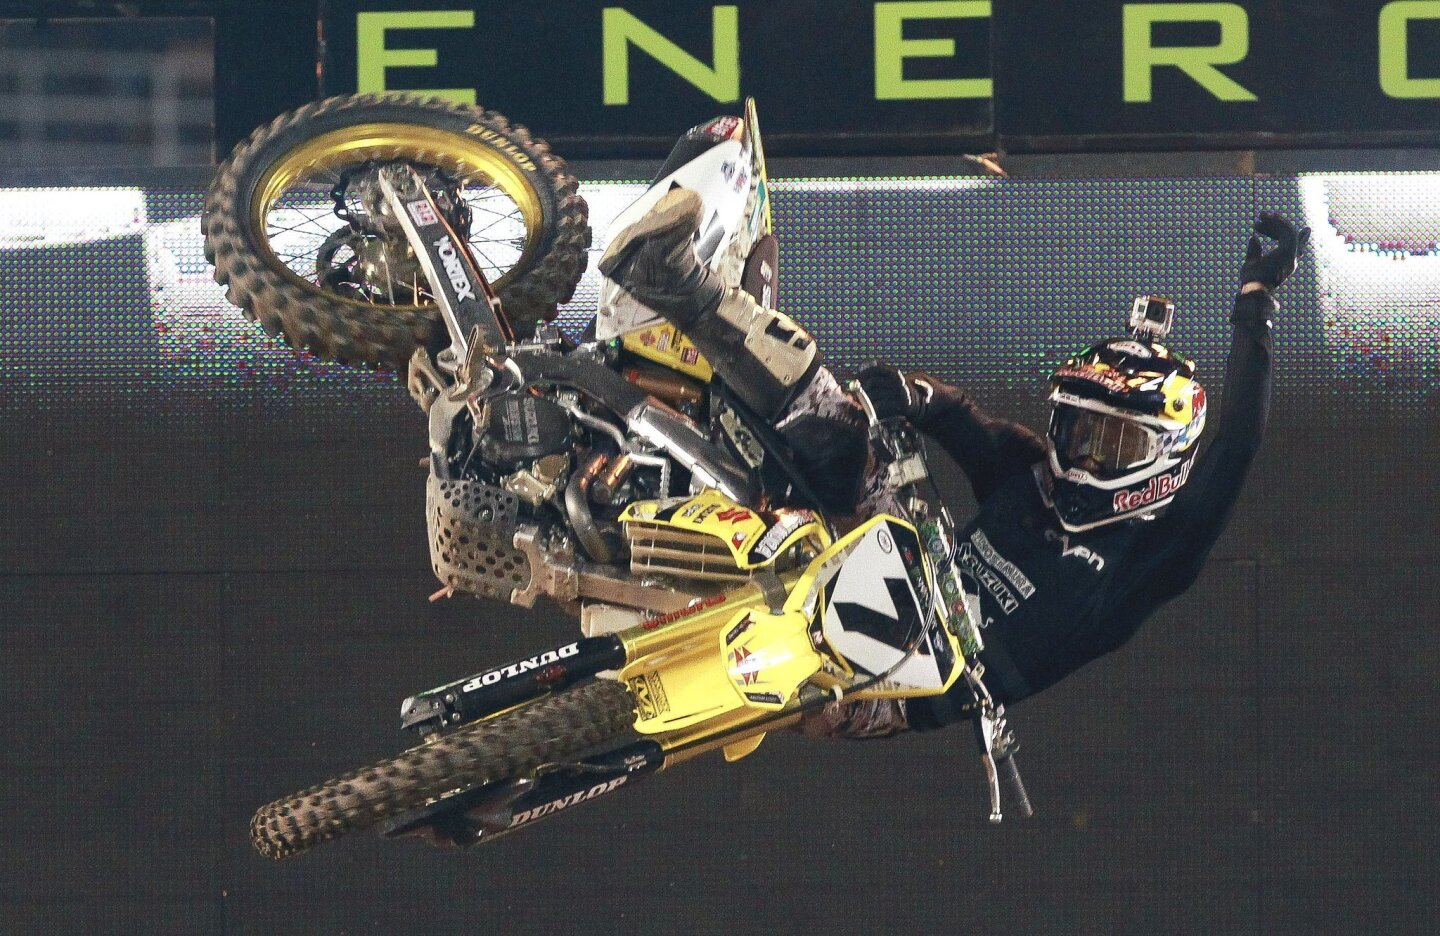 James Stewart celebrates as he crosses the finish line to win the Main Event of the Monster Energy Supercross at Qualcomm Stadium on Saturday, February 8, 2014.